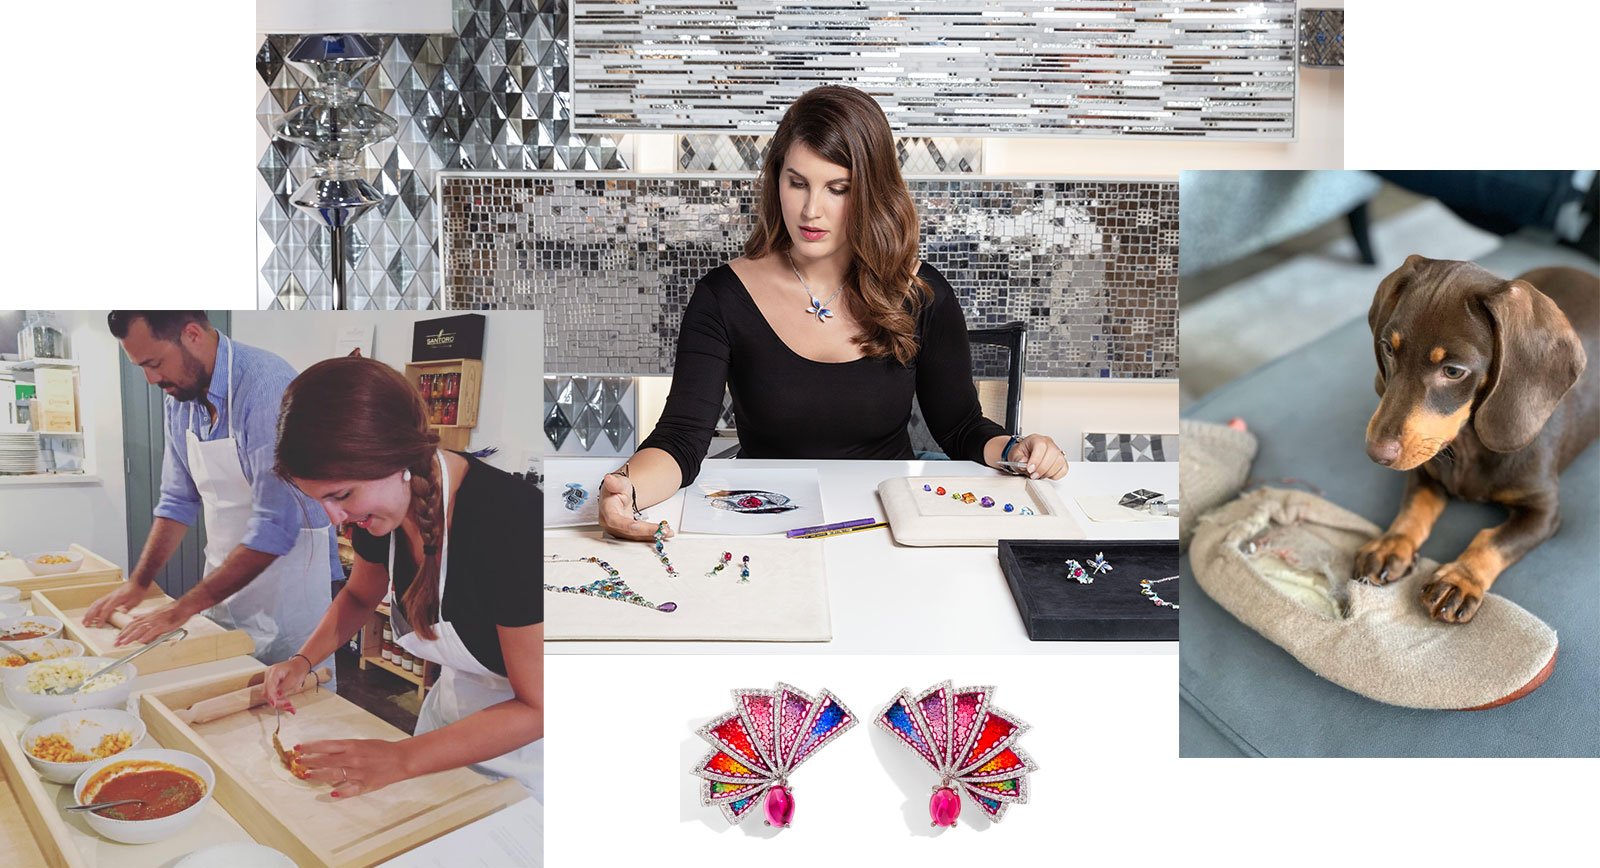 Cooking and her new dachshund are two passions of Gioia Placuzzi, Creative Director of SICIS jewellery